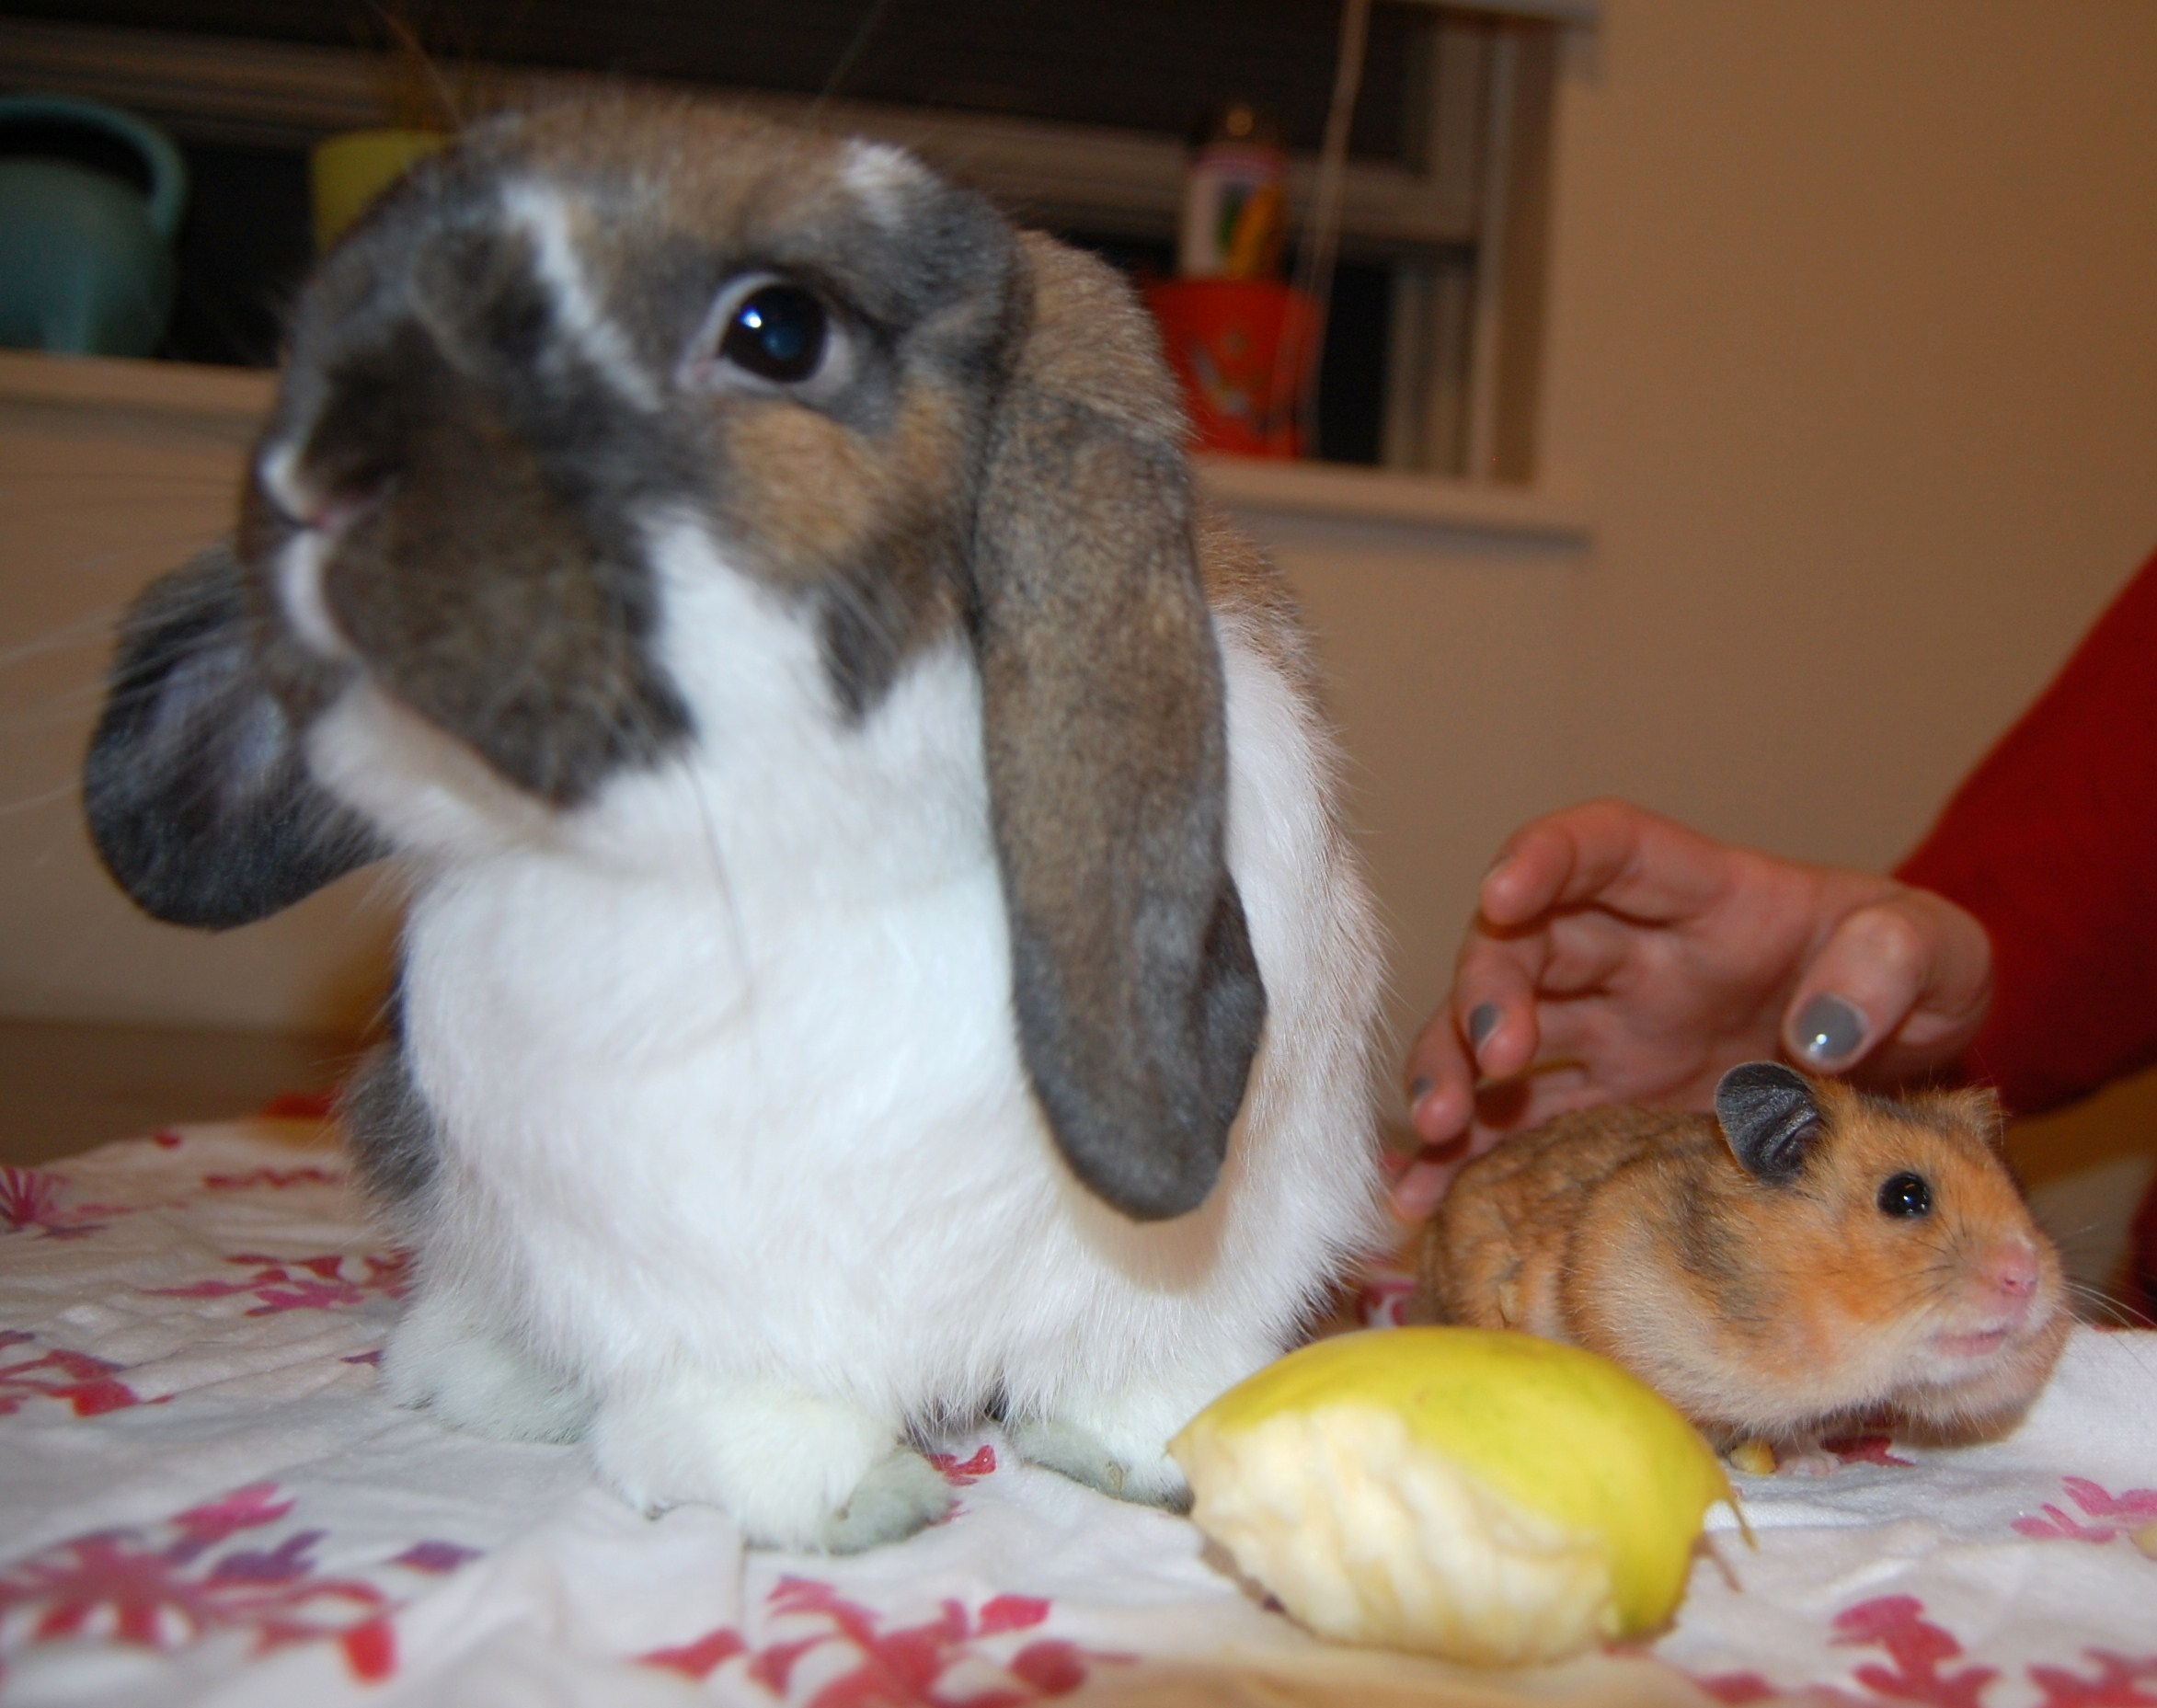 It Is Hard Getting Bunny and Hamster to Take a Nice Photo Together 1